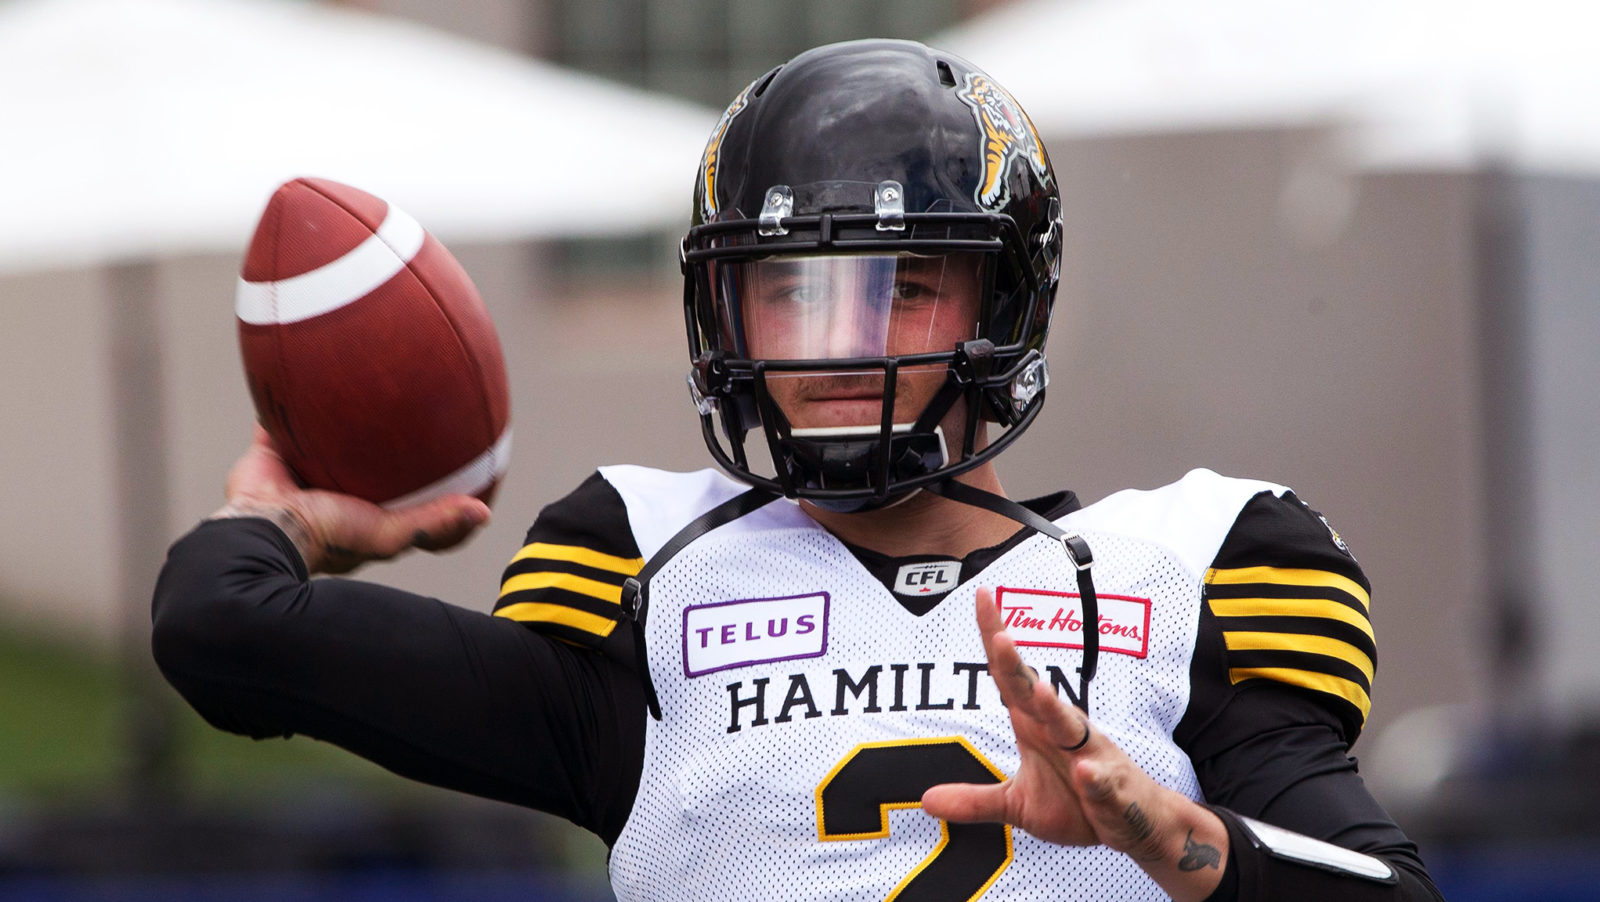 dac14760a The Weekly Say  Is it too early for Manziel trade talk  - CFL.ca